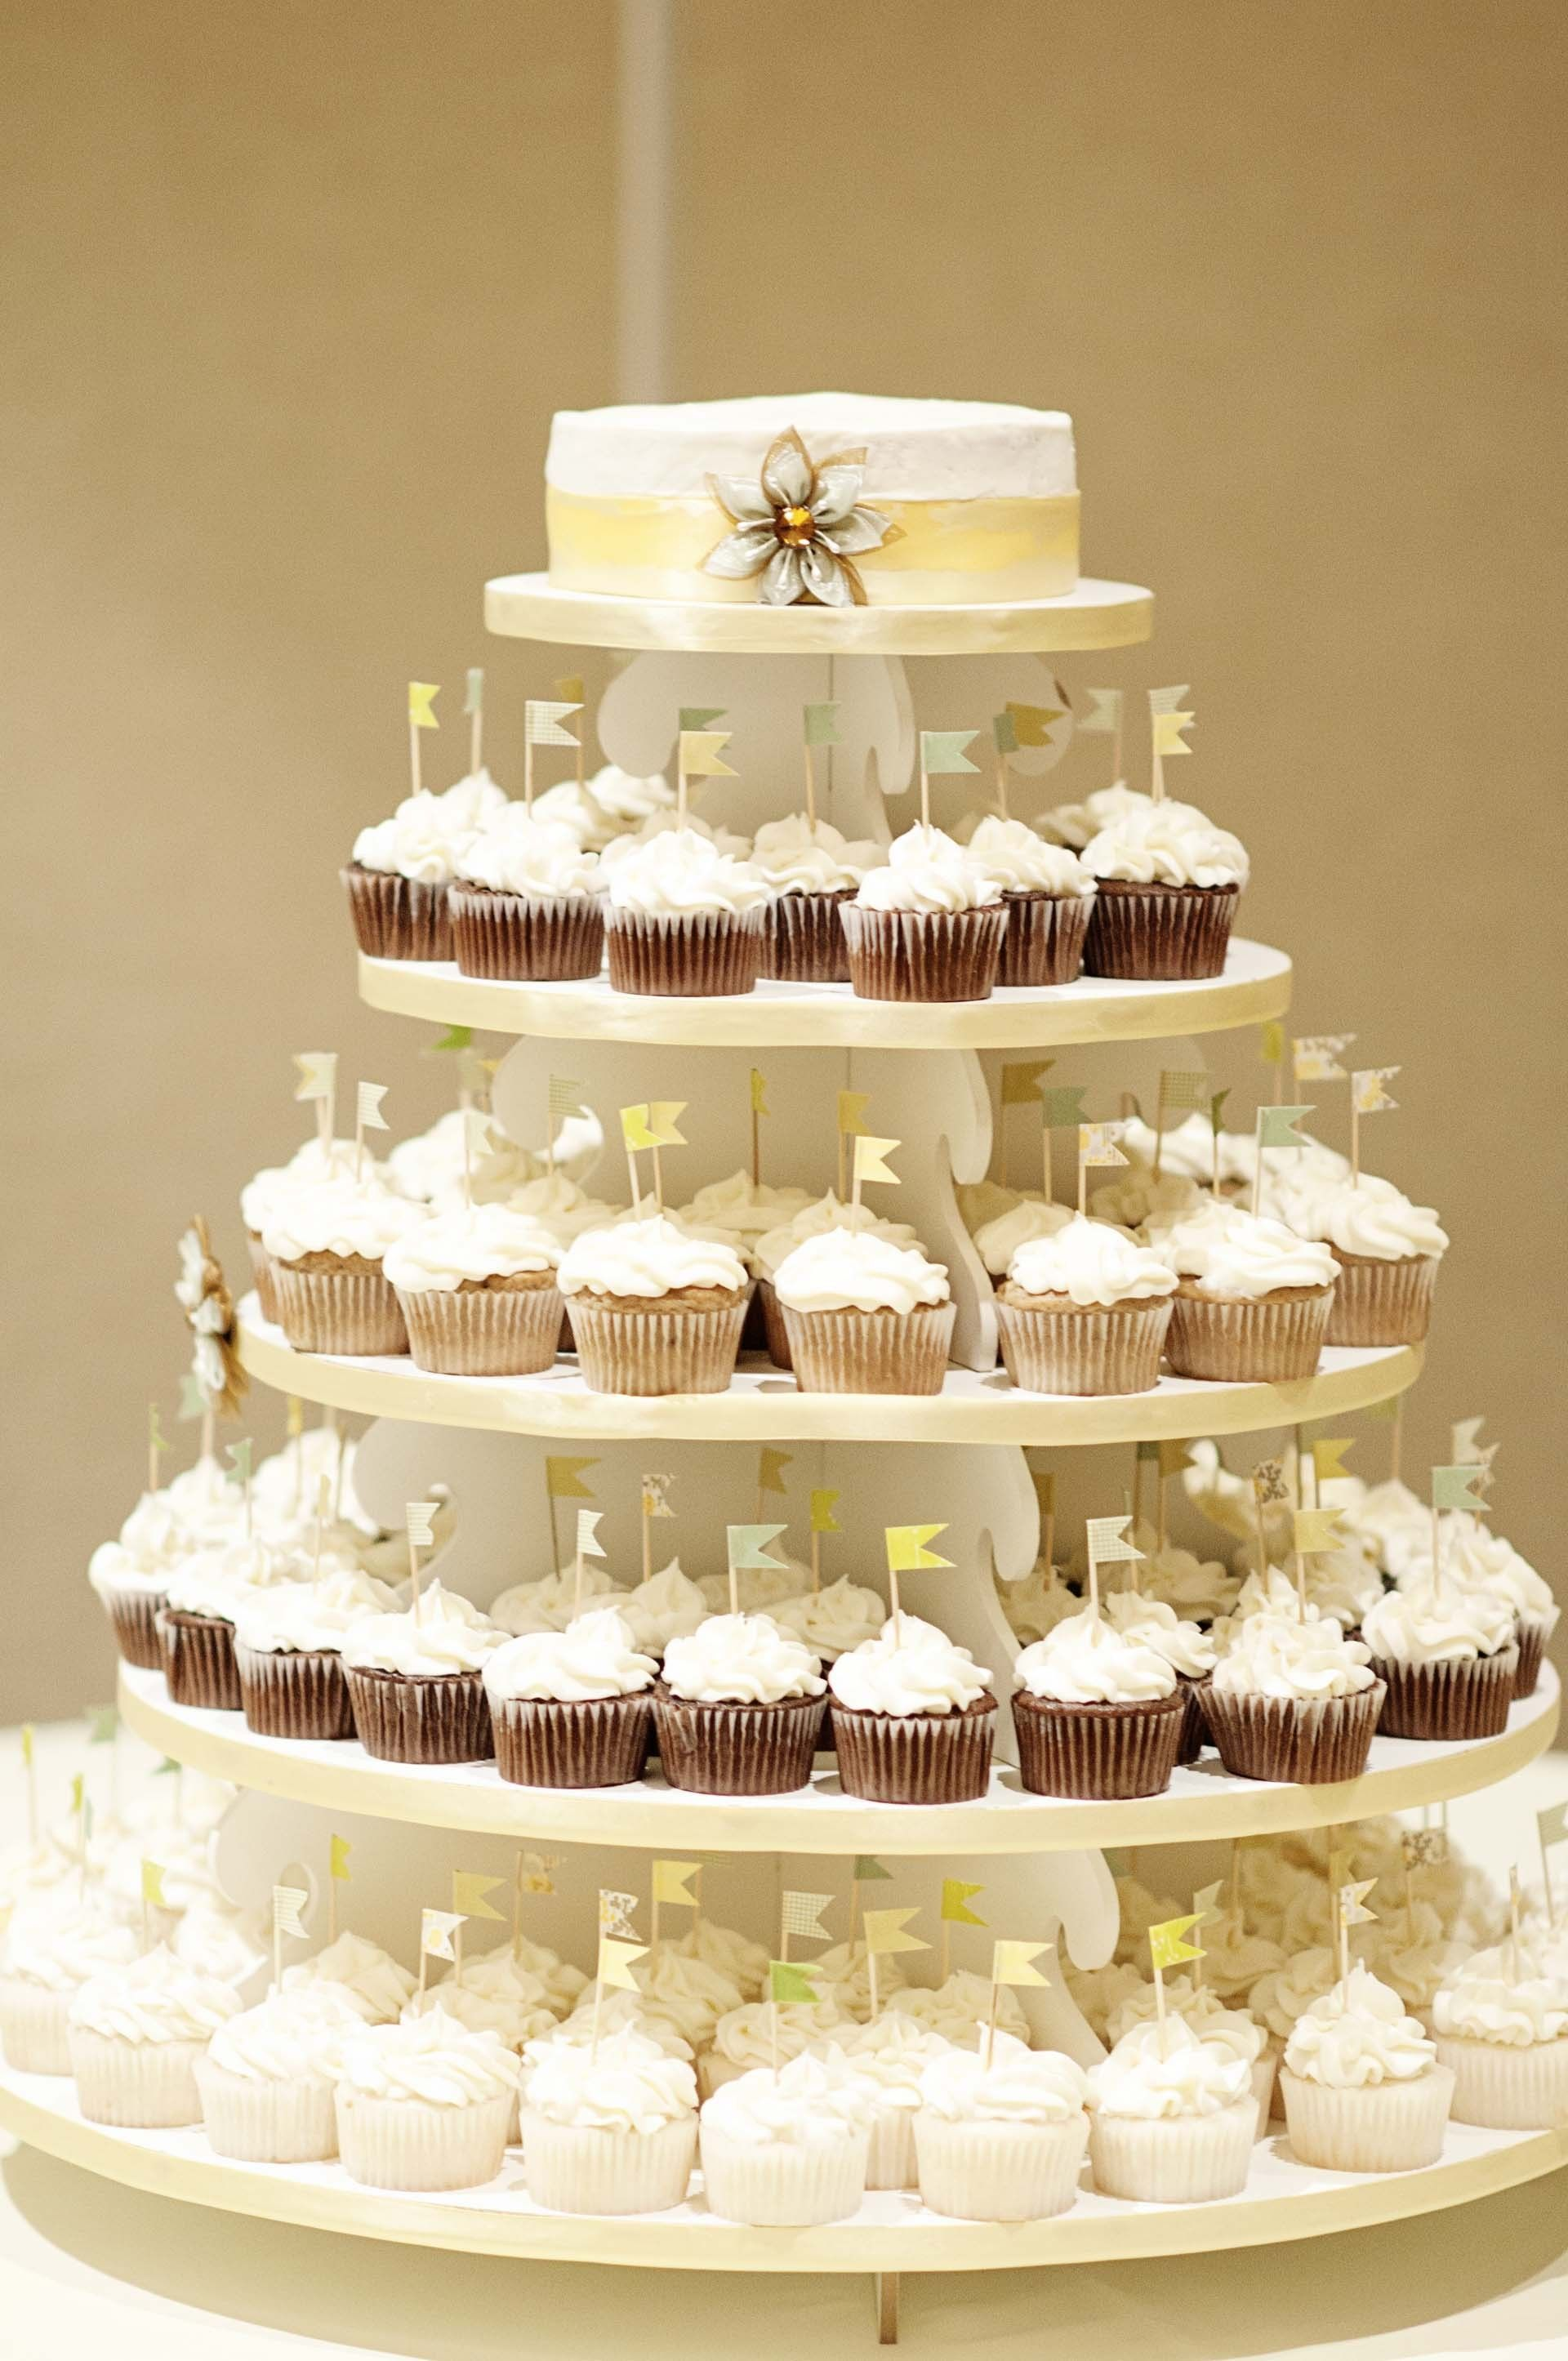 Love the hat topper on this Cupcake display! | http://brds.vu/rLJnZB ...